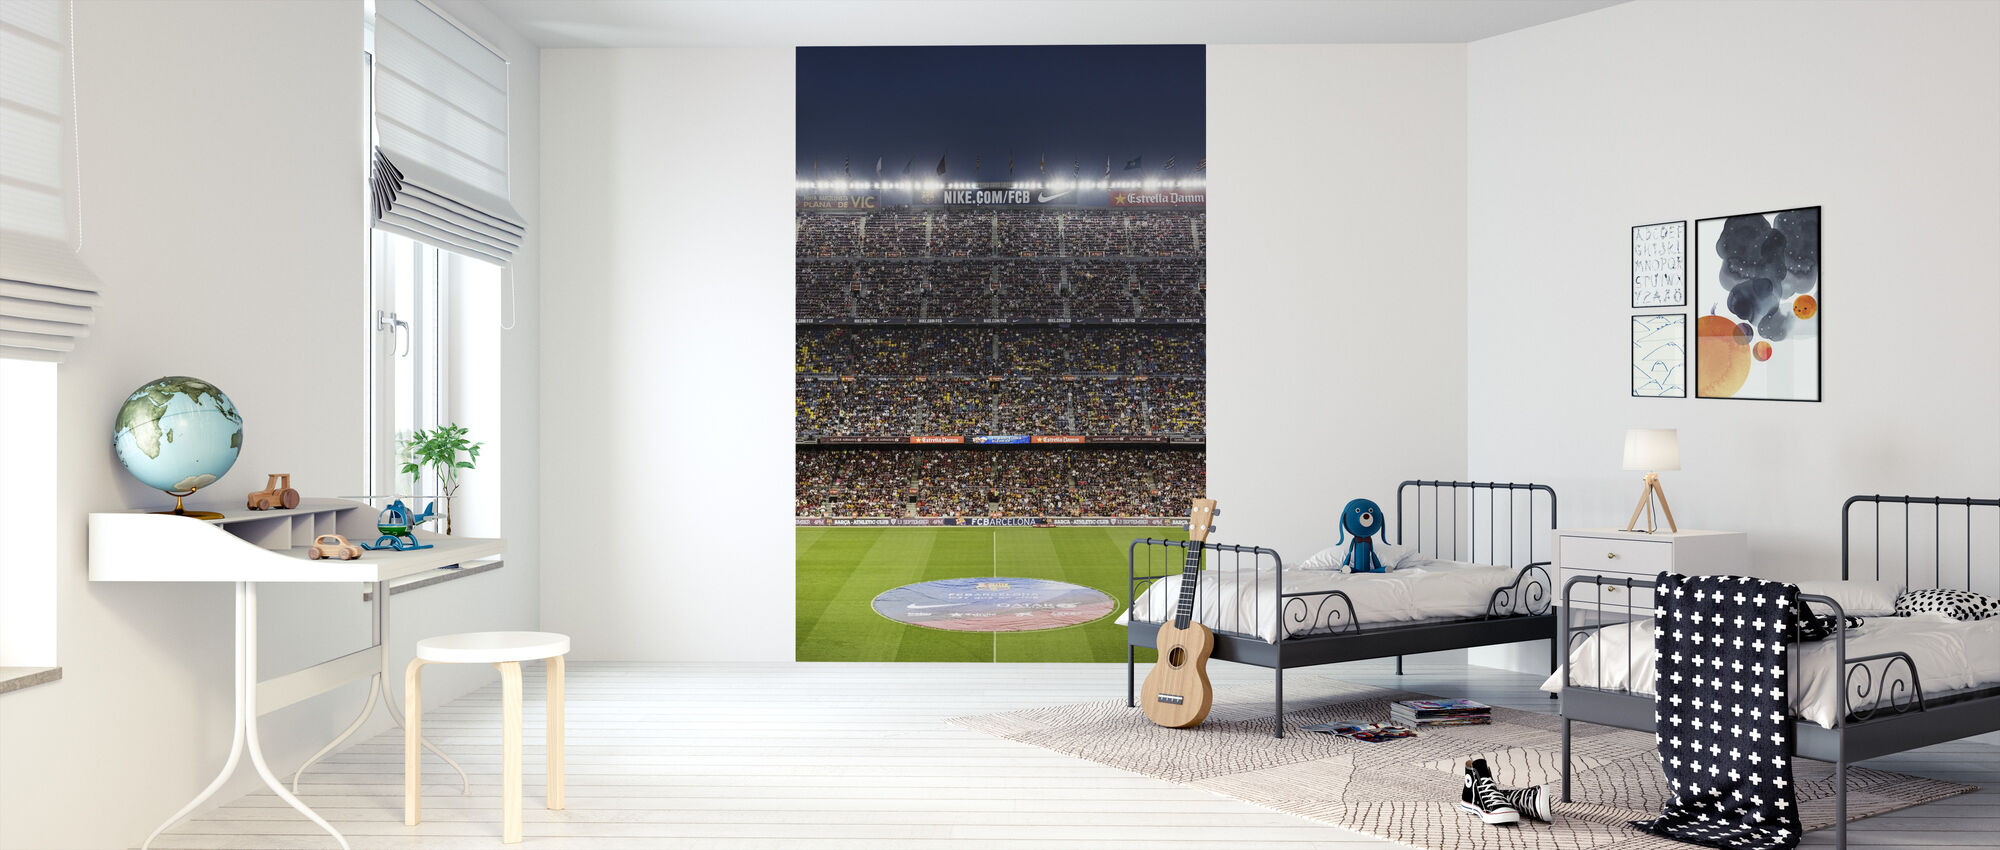 Soccer Stadium - Wallpaper - Kids Room